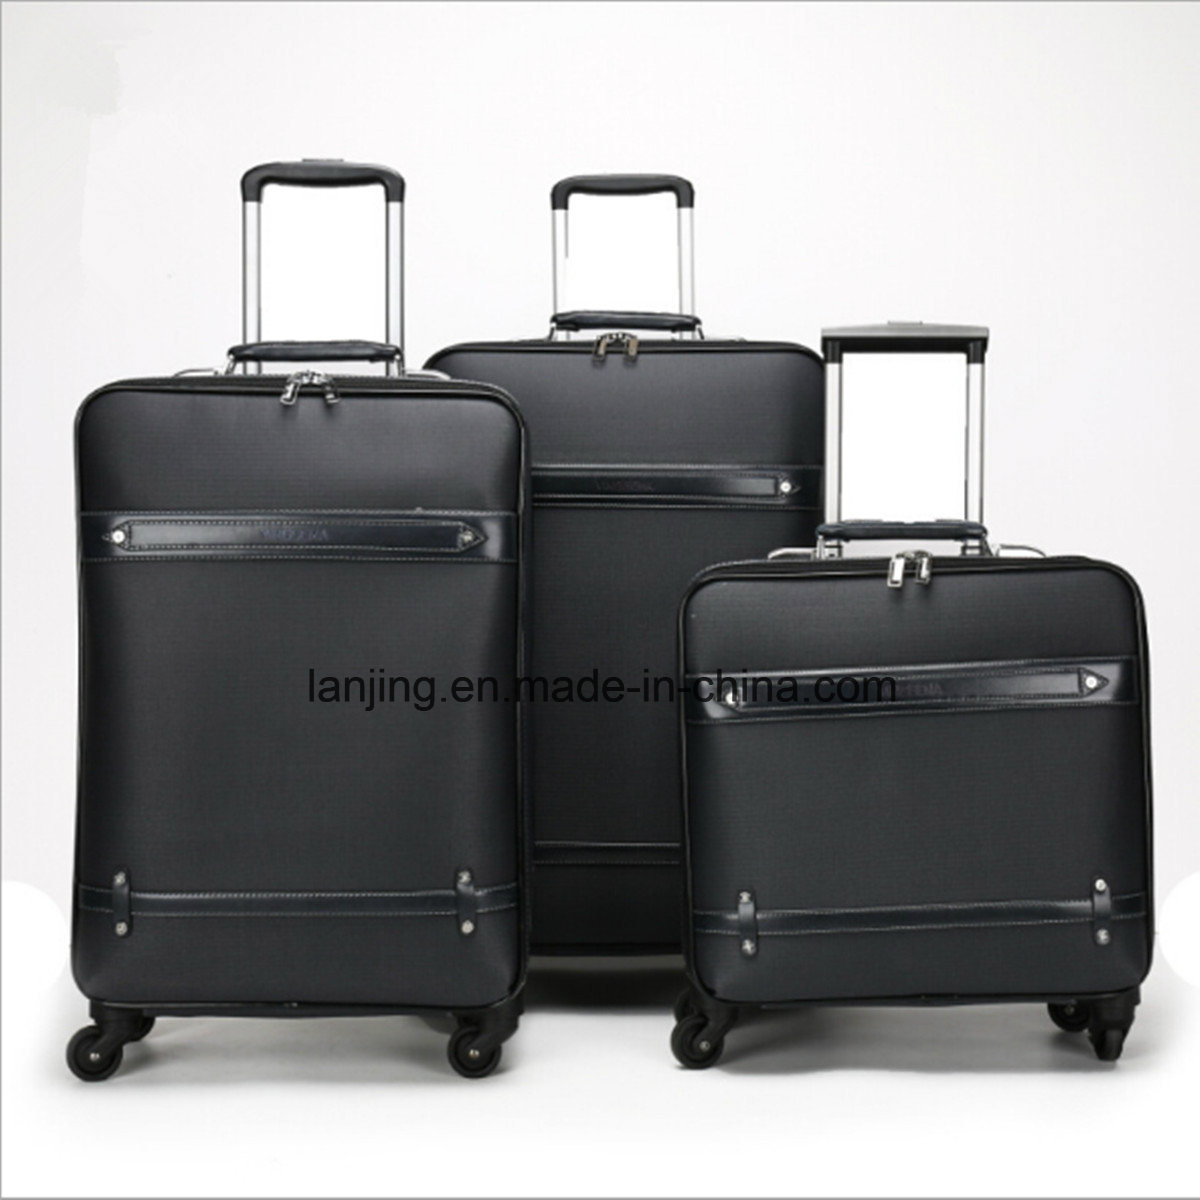 Canvas Trolley Travel Luggage, Softside Laptop Trolley Bag